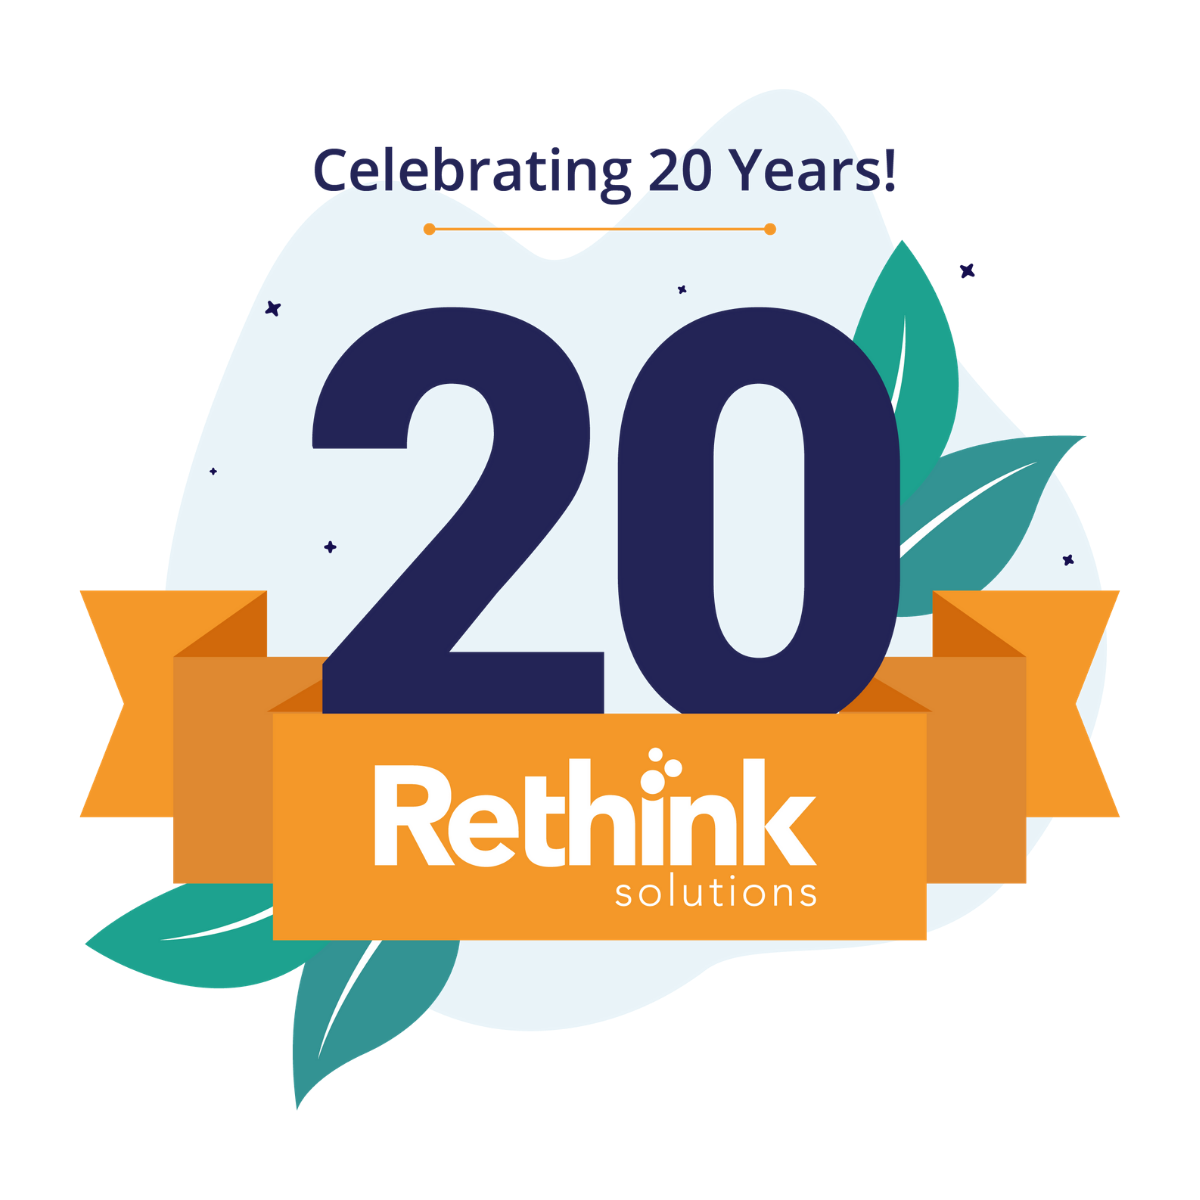 rethink solutions logo with a 20 year badge and green leaves